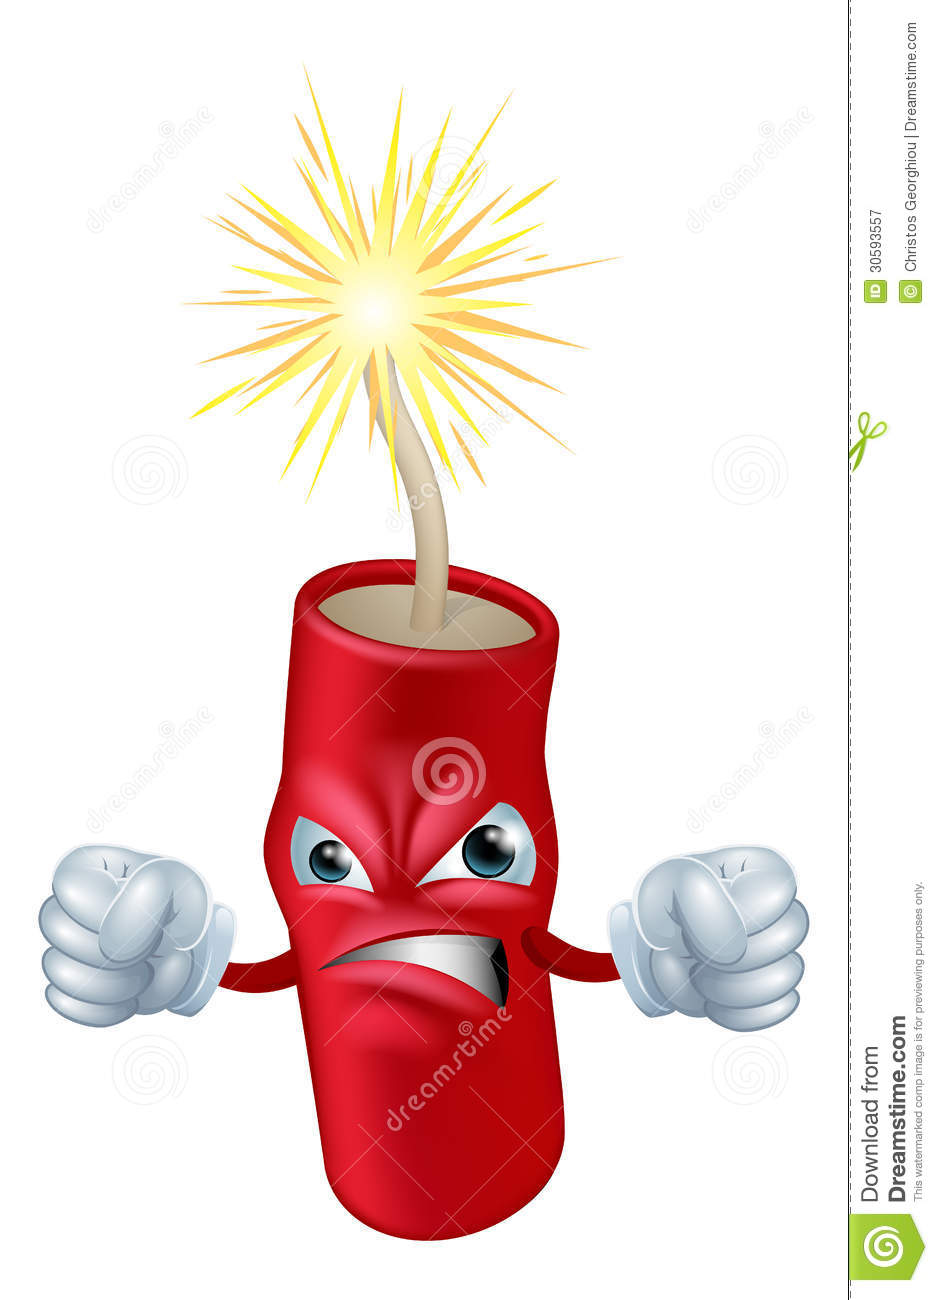 ... looking cartoon firecracker or stick of dynamite character or mascot